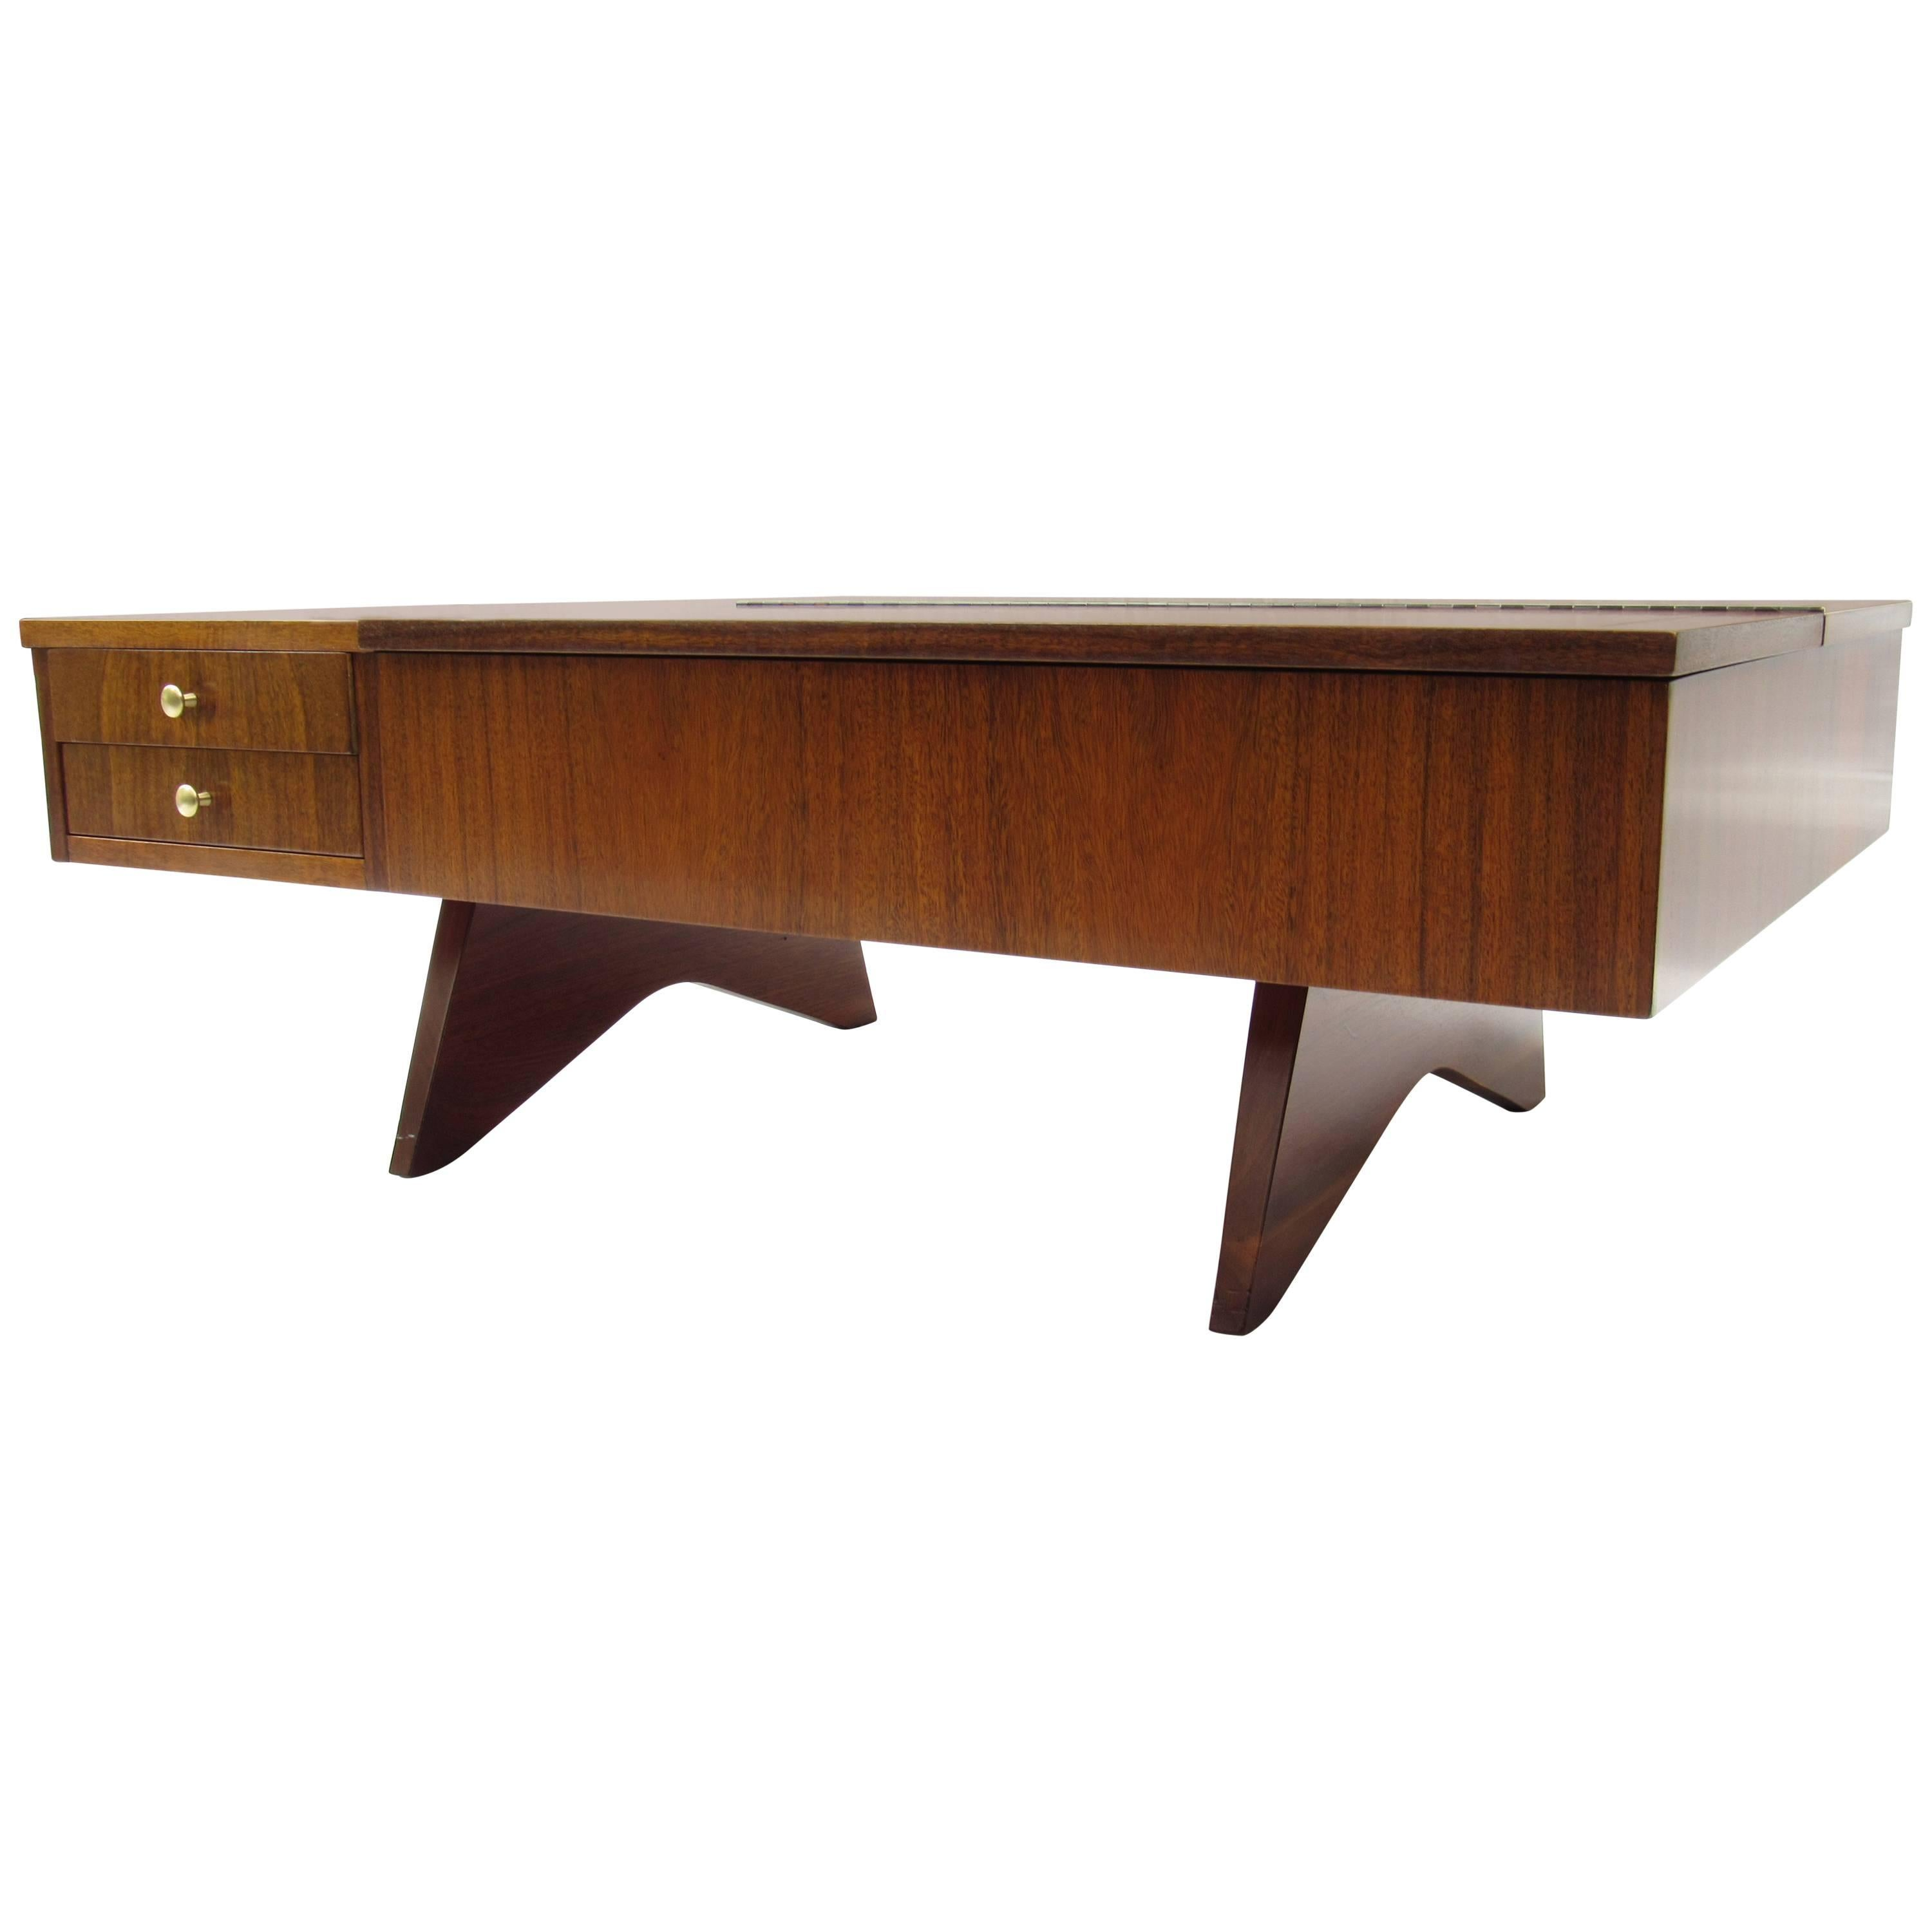 George Nakashima Coffee Table Model 272 Laurel And Walnut Widdicomb, 1961